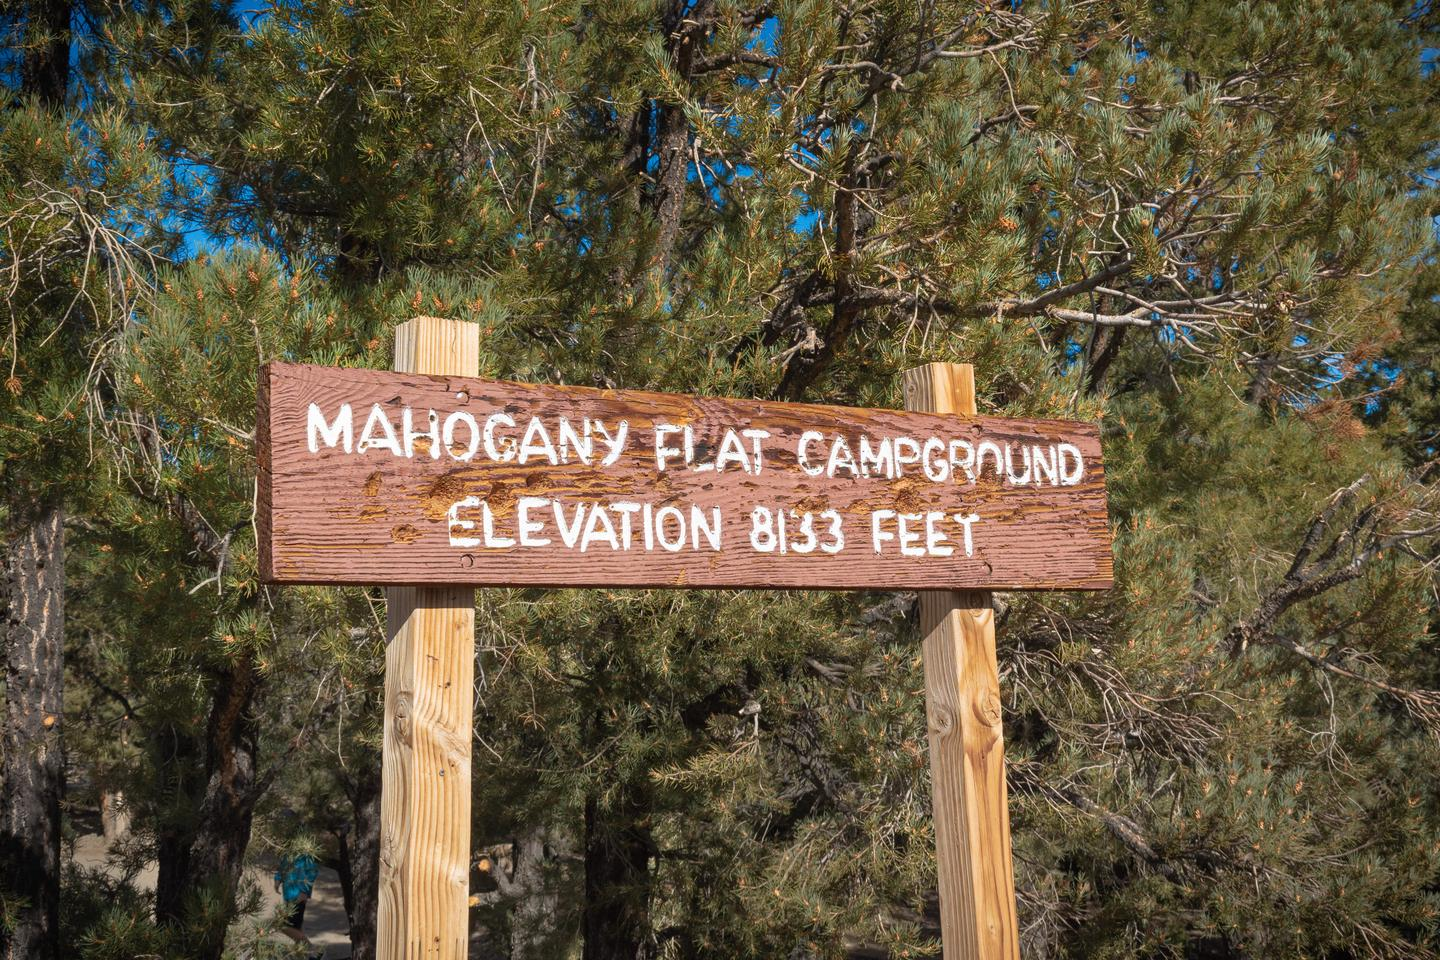 Mahogany Flat Campground SignThis higher elevation campsite is closed in the winter.